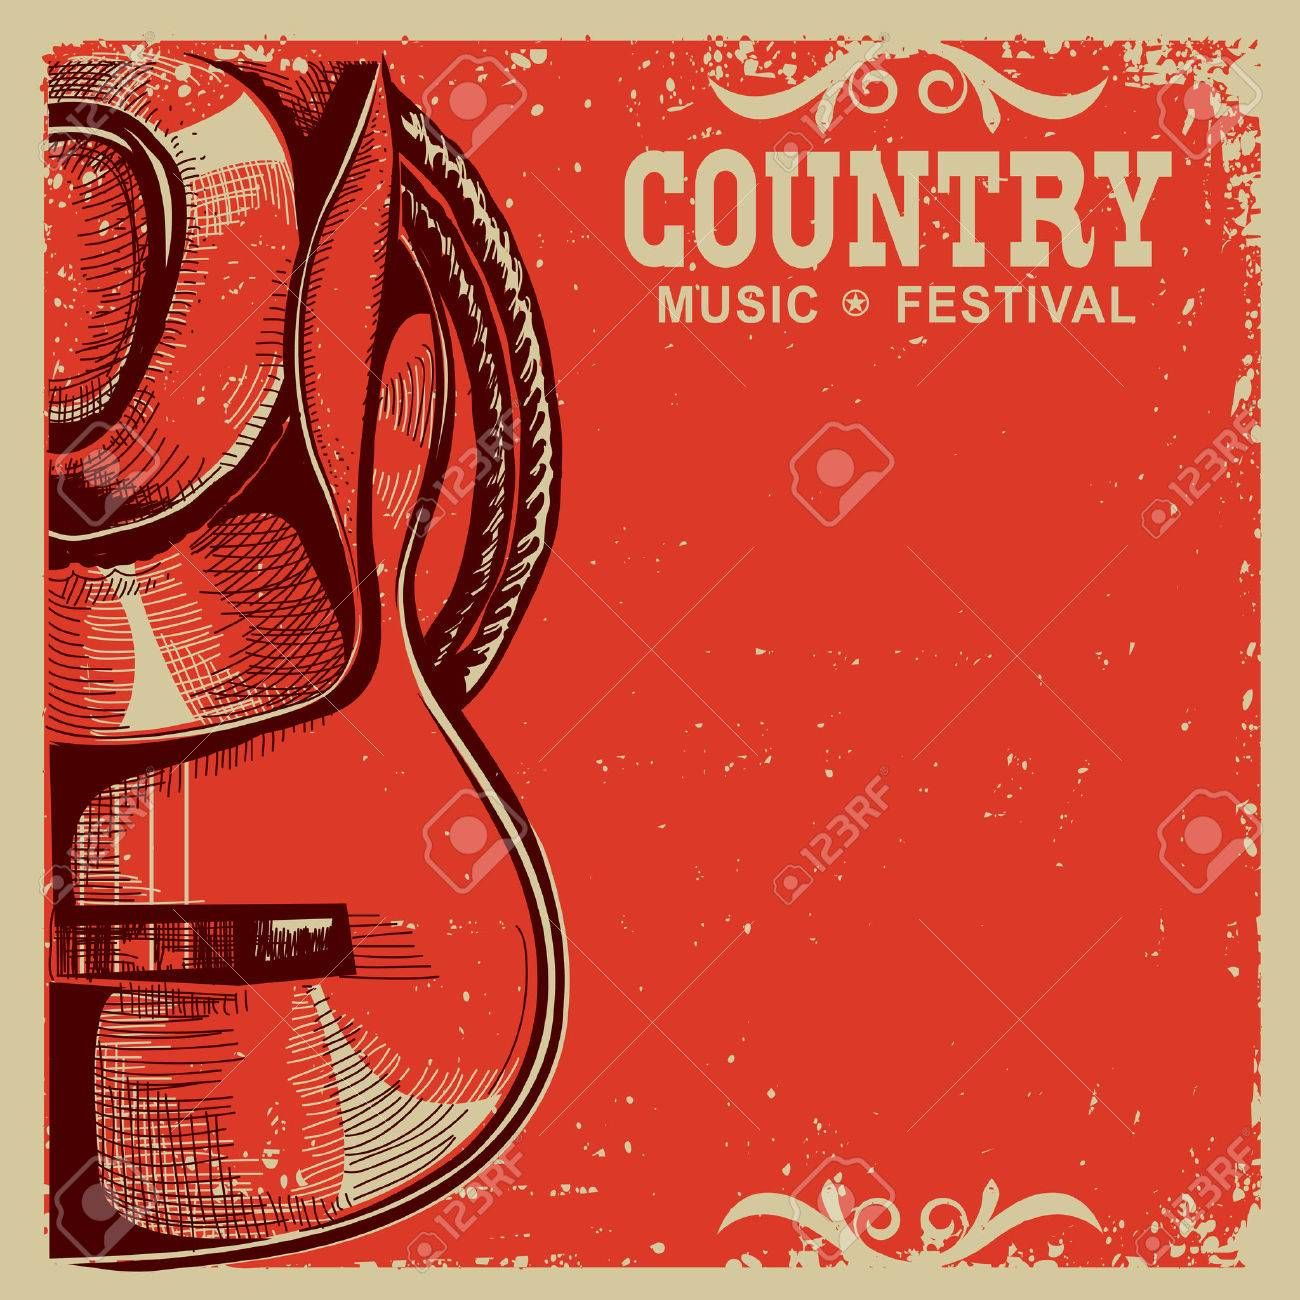 Western Country Music Poster With American Cowboy Hat And Guitar On Vintage Card Background Illustrat Country Music Festival Music Festival Poster Music Poster